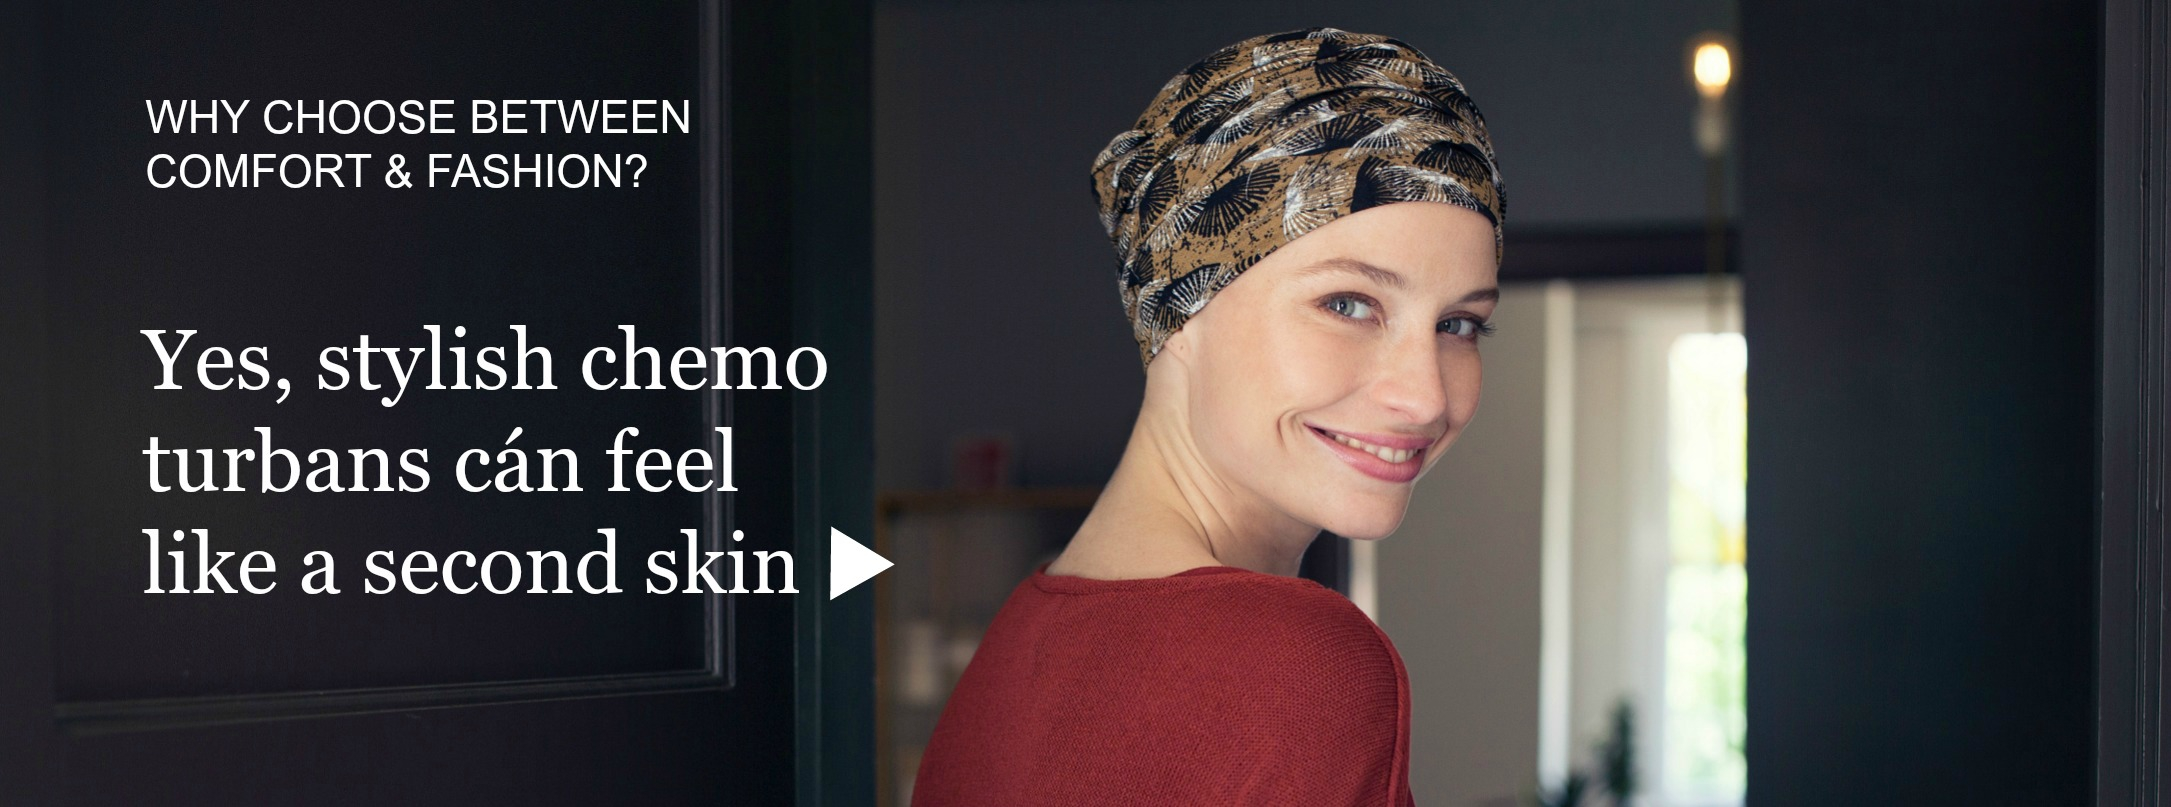 chemo hats and cancer turbans